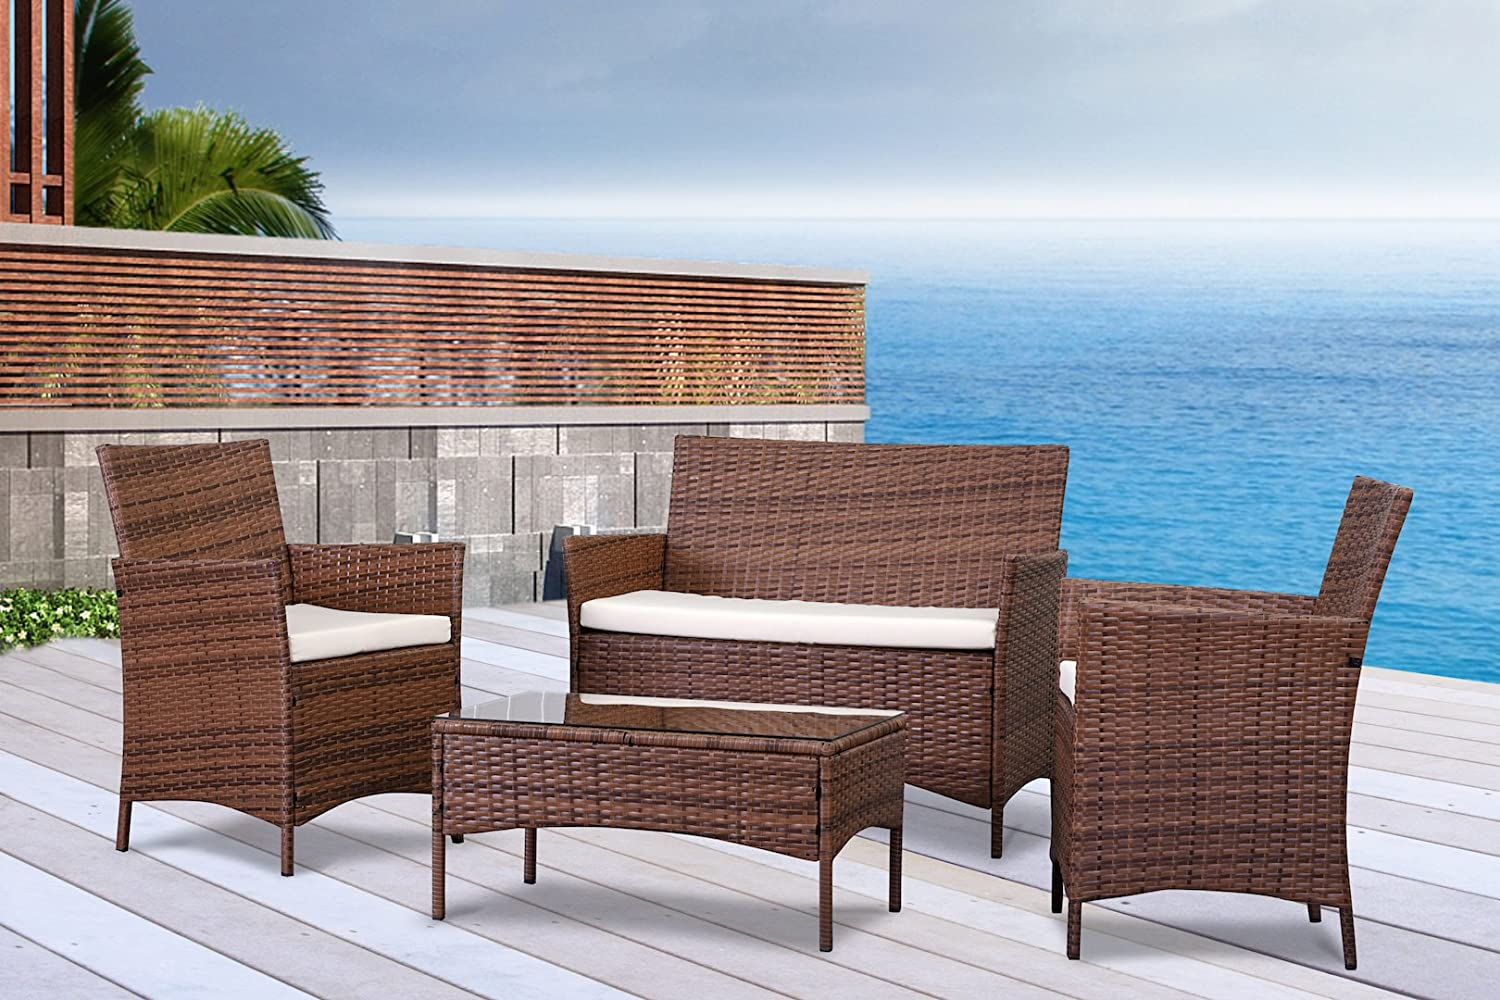 collection green outdoor lighting pictures patiofurn home. the french riviera collection 4 pc outdoor rattan wicker sofa patio furniture set choice of u0026 cushion color light brown ivory cushions green lighting pictures patiofurn home amazonca